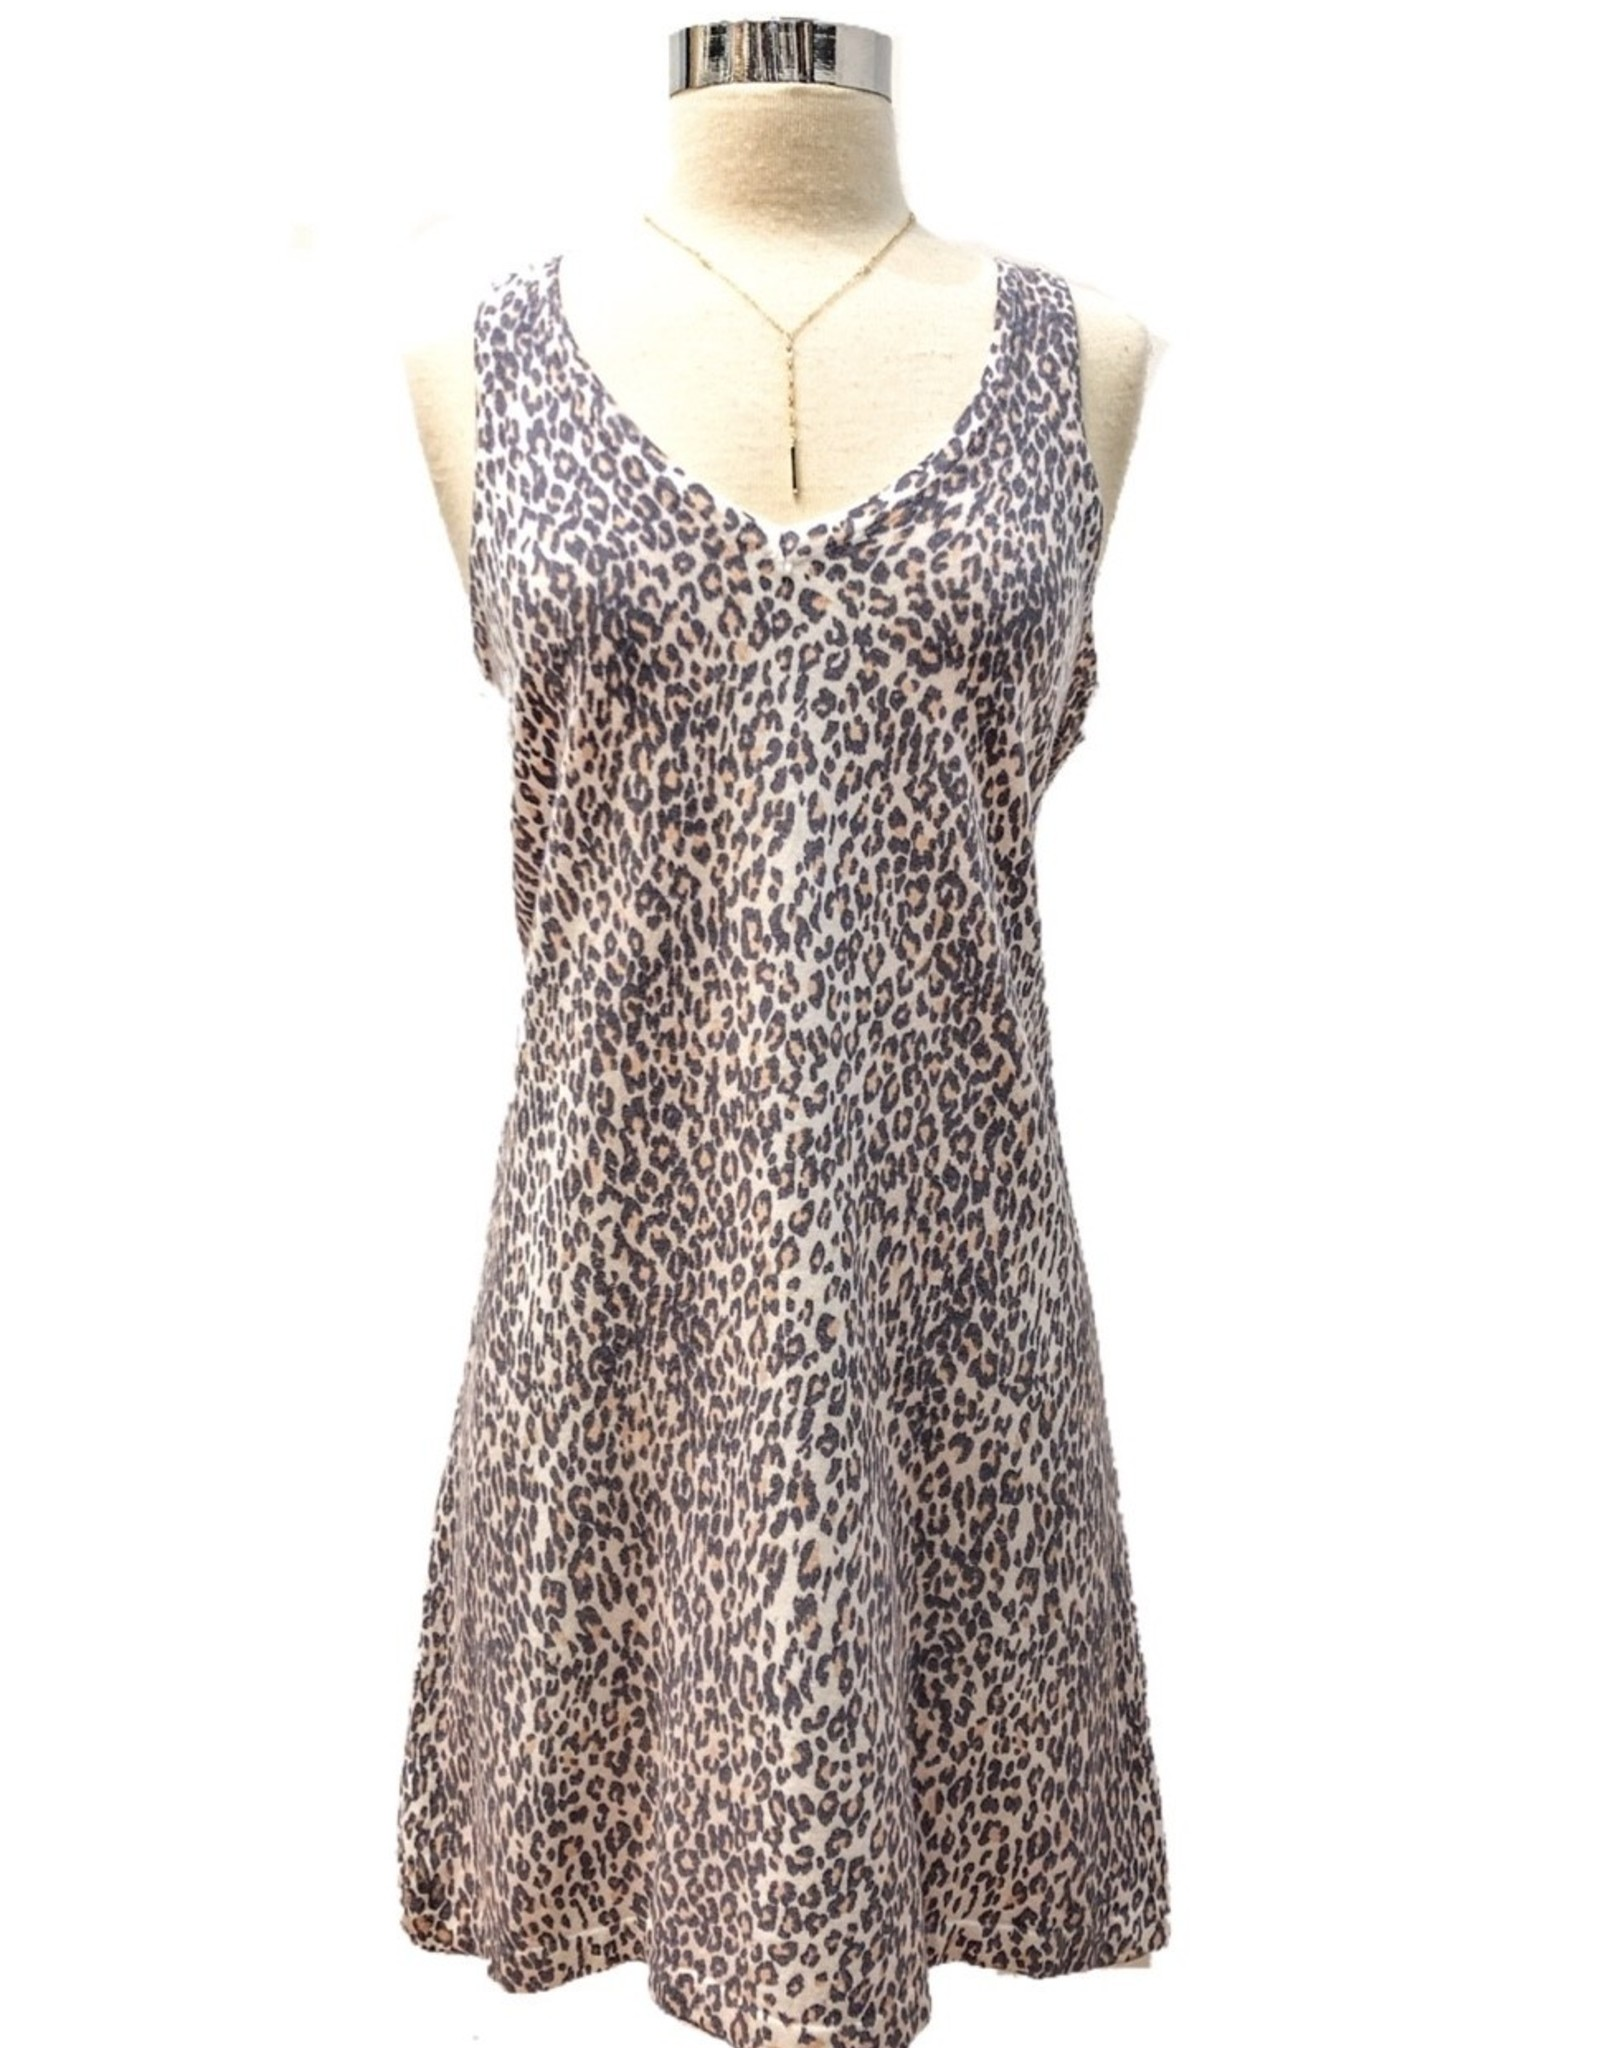 21-244LDL LEOPARD DRESS